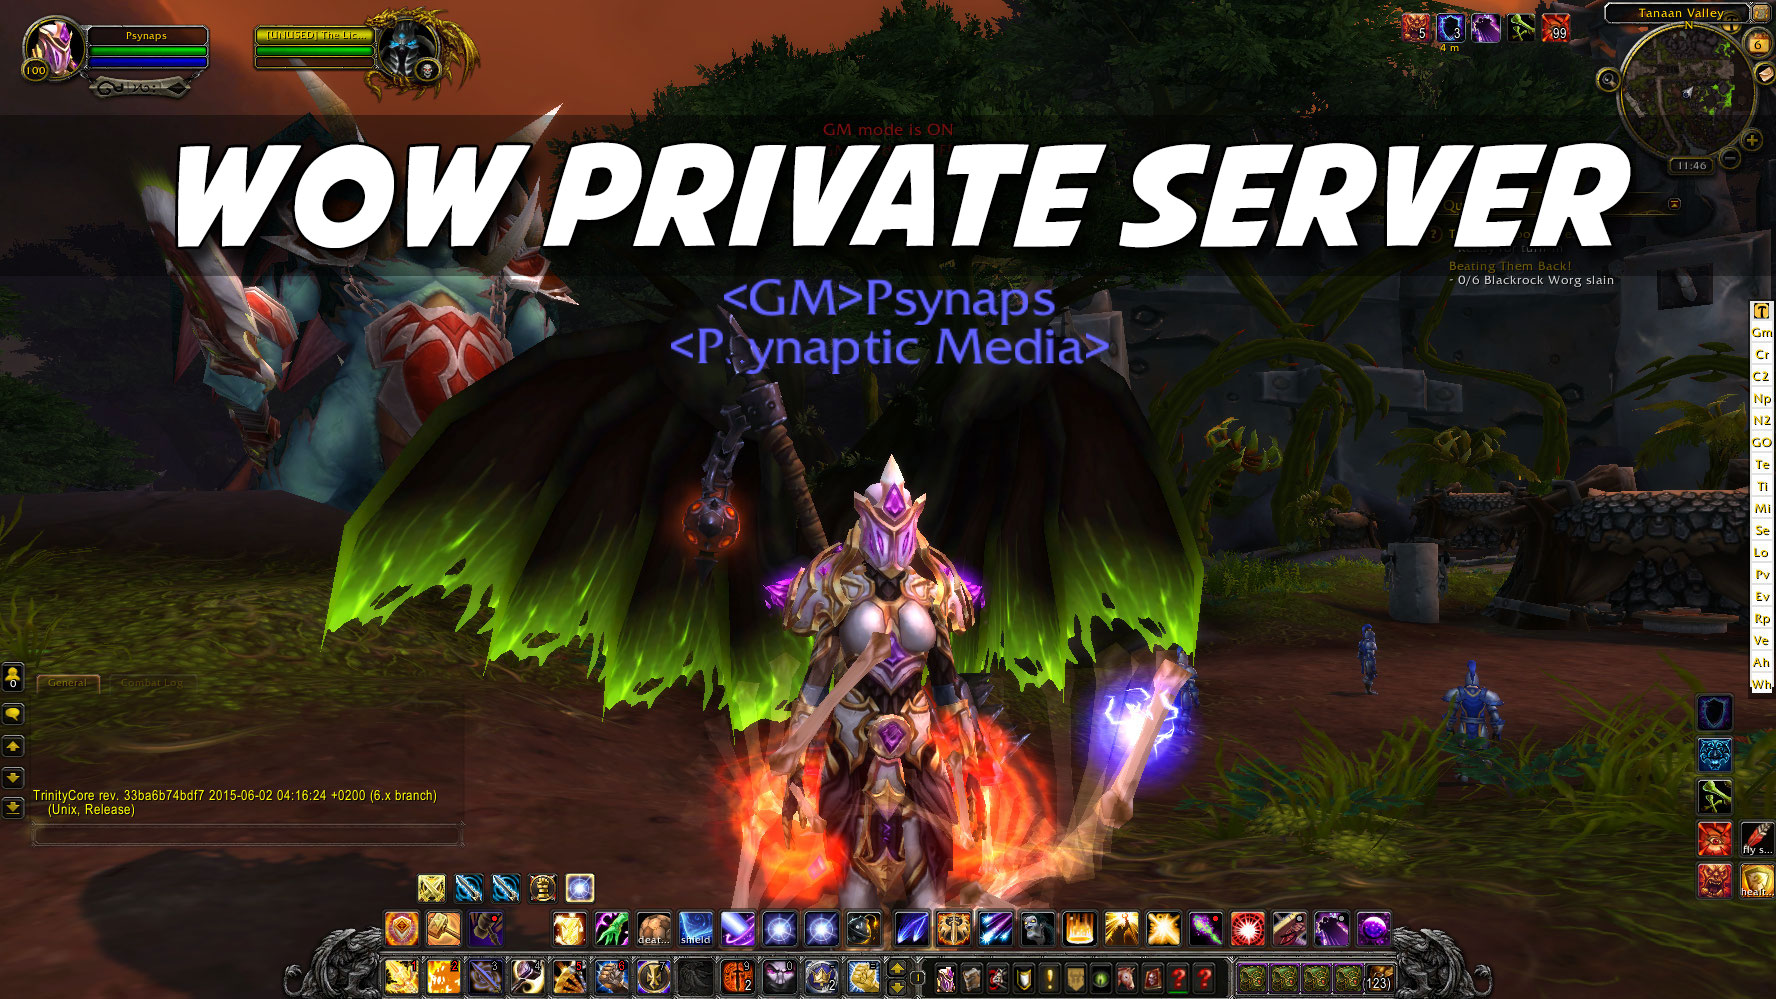 Private WoW Server Guide: How to Make a WoD Server for Video